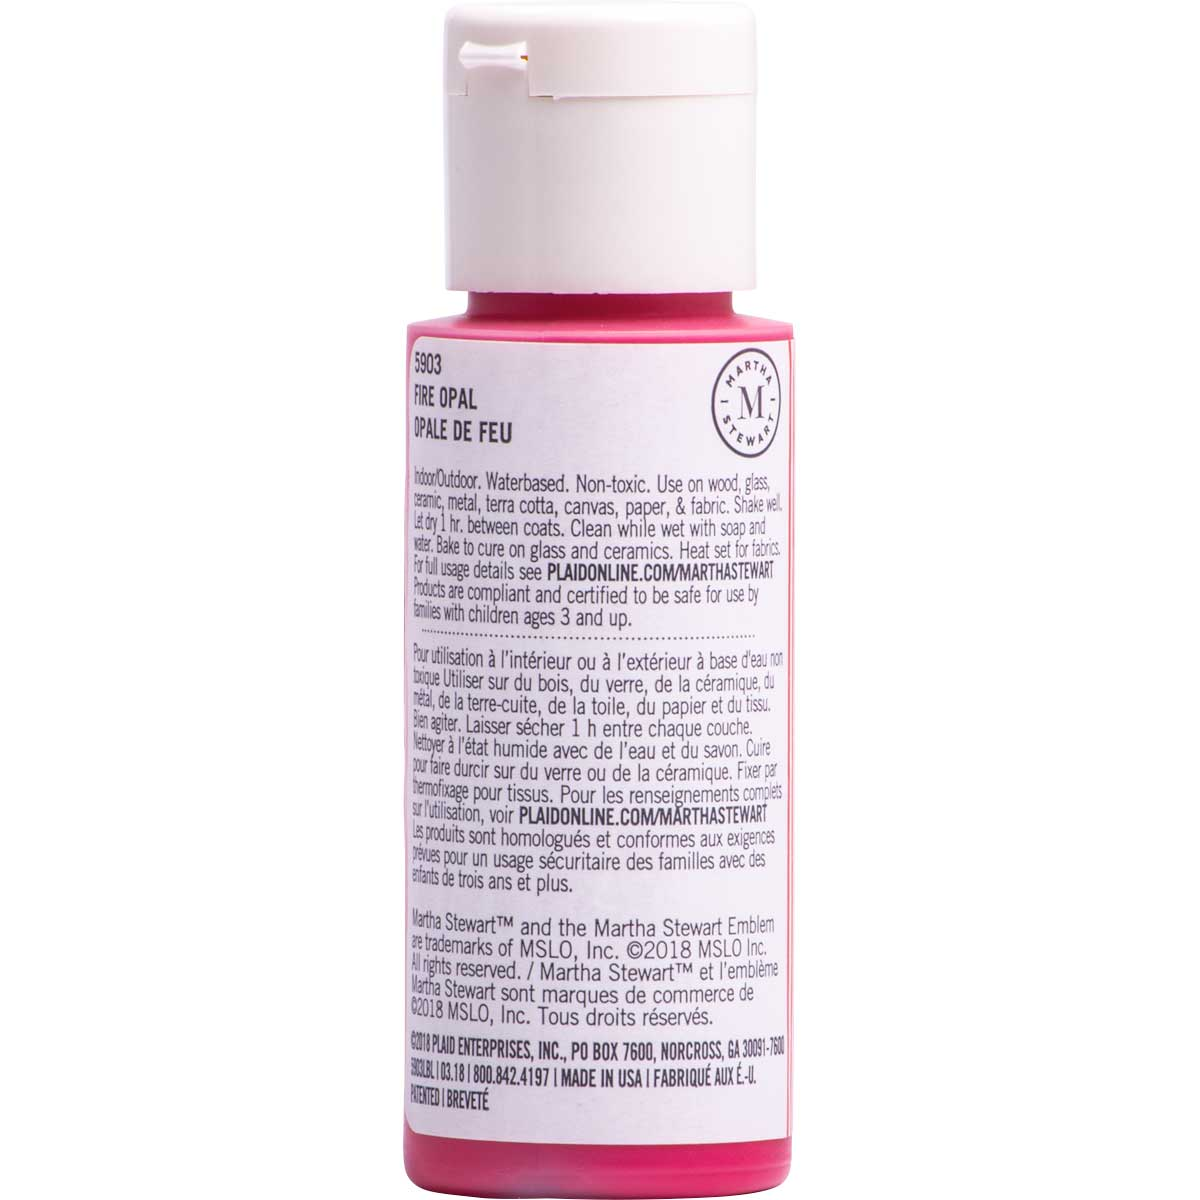 Martha Stewart ® Multi-Surface Satin Acrylic Craft Paint CPSIA - Fire Opal, 2 oz. - 5903